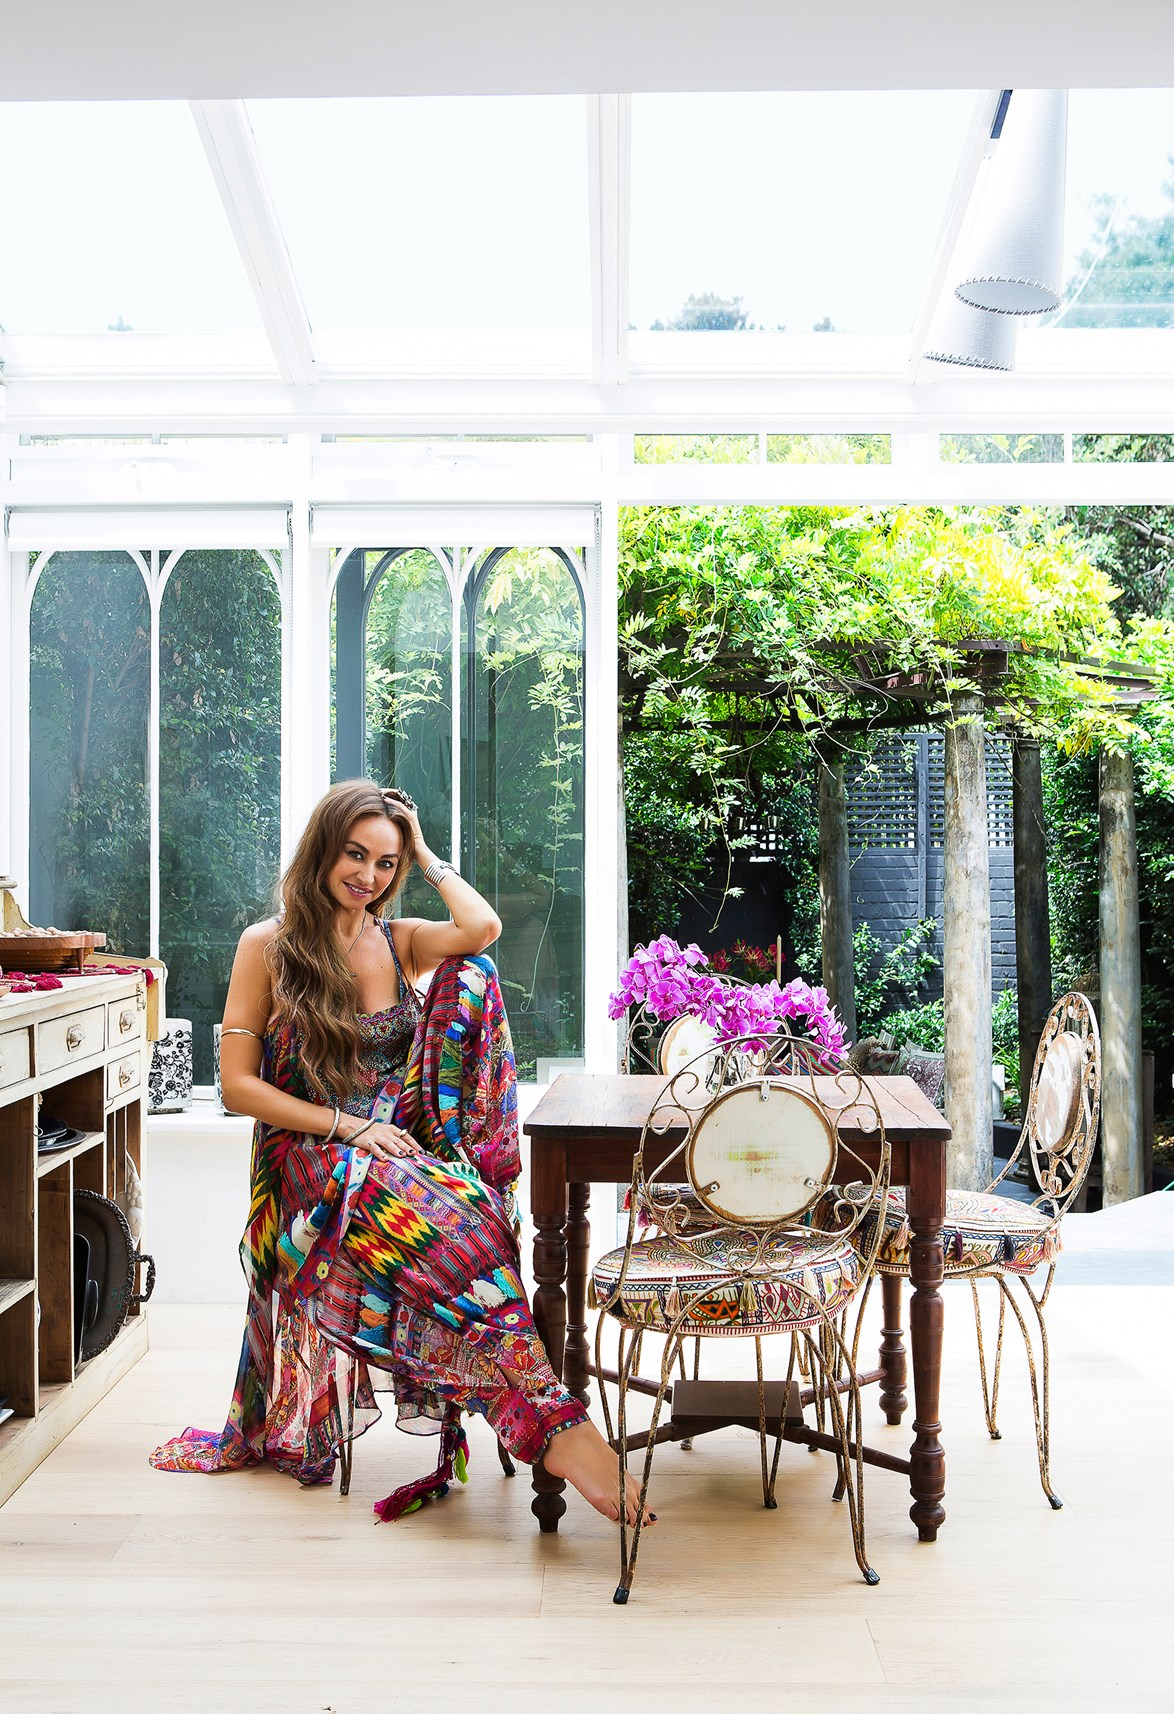 "Fashion designer [Camilla Franks' Sydney home](https://www.homestolove.com.au/gallery-the-eclectic-home-of-designer-camilla-franks-2355|target=""_blank"") mixes Mediterranan and bohemian style in a medley of colour, prints and eclectic treasures collected at home and abroad."